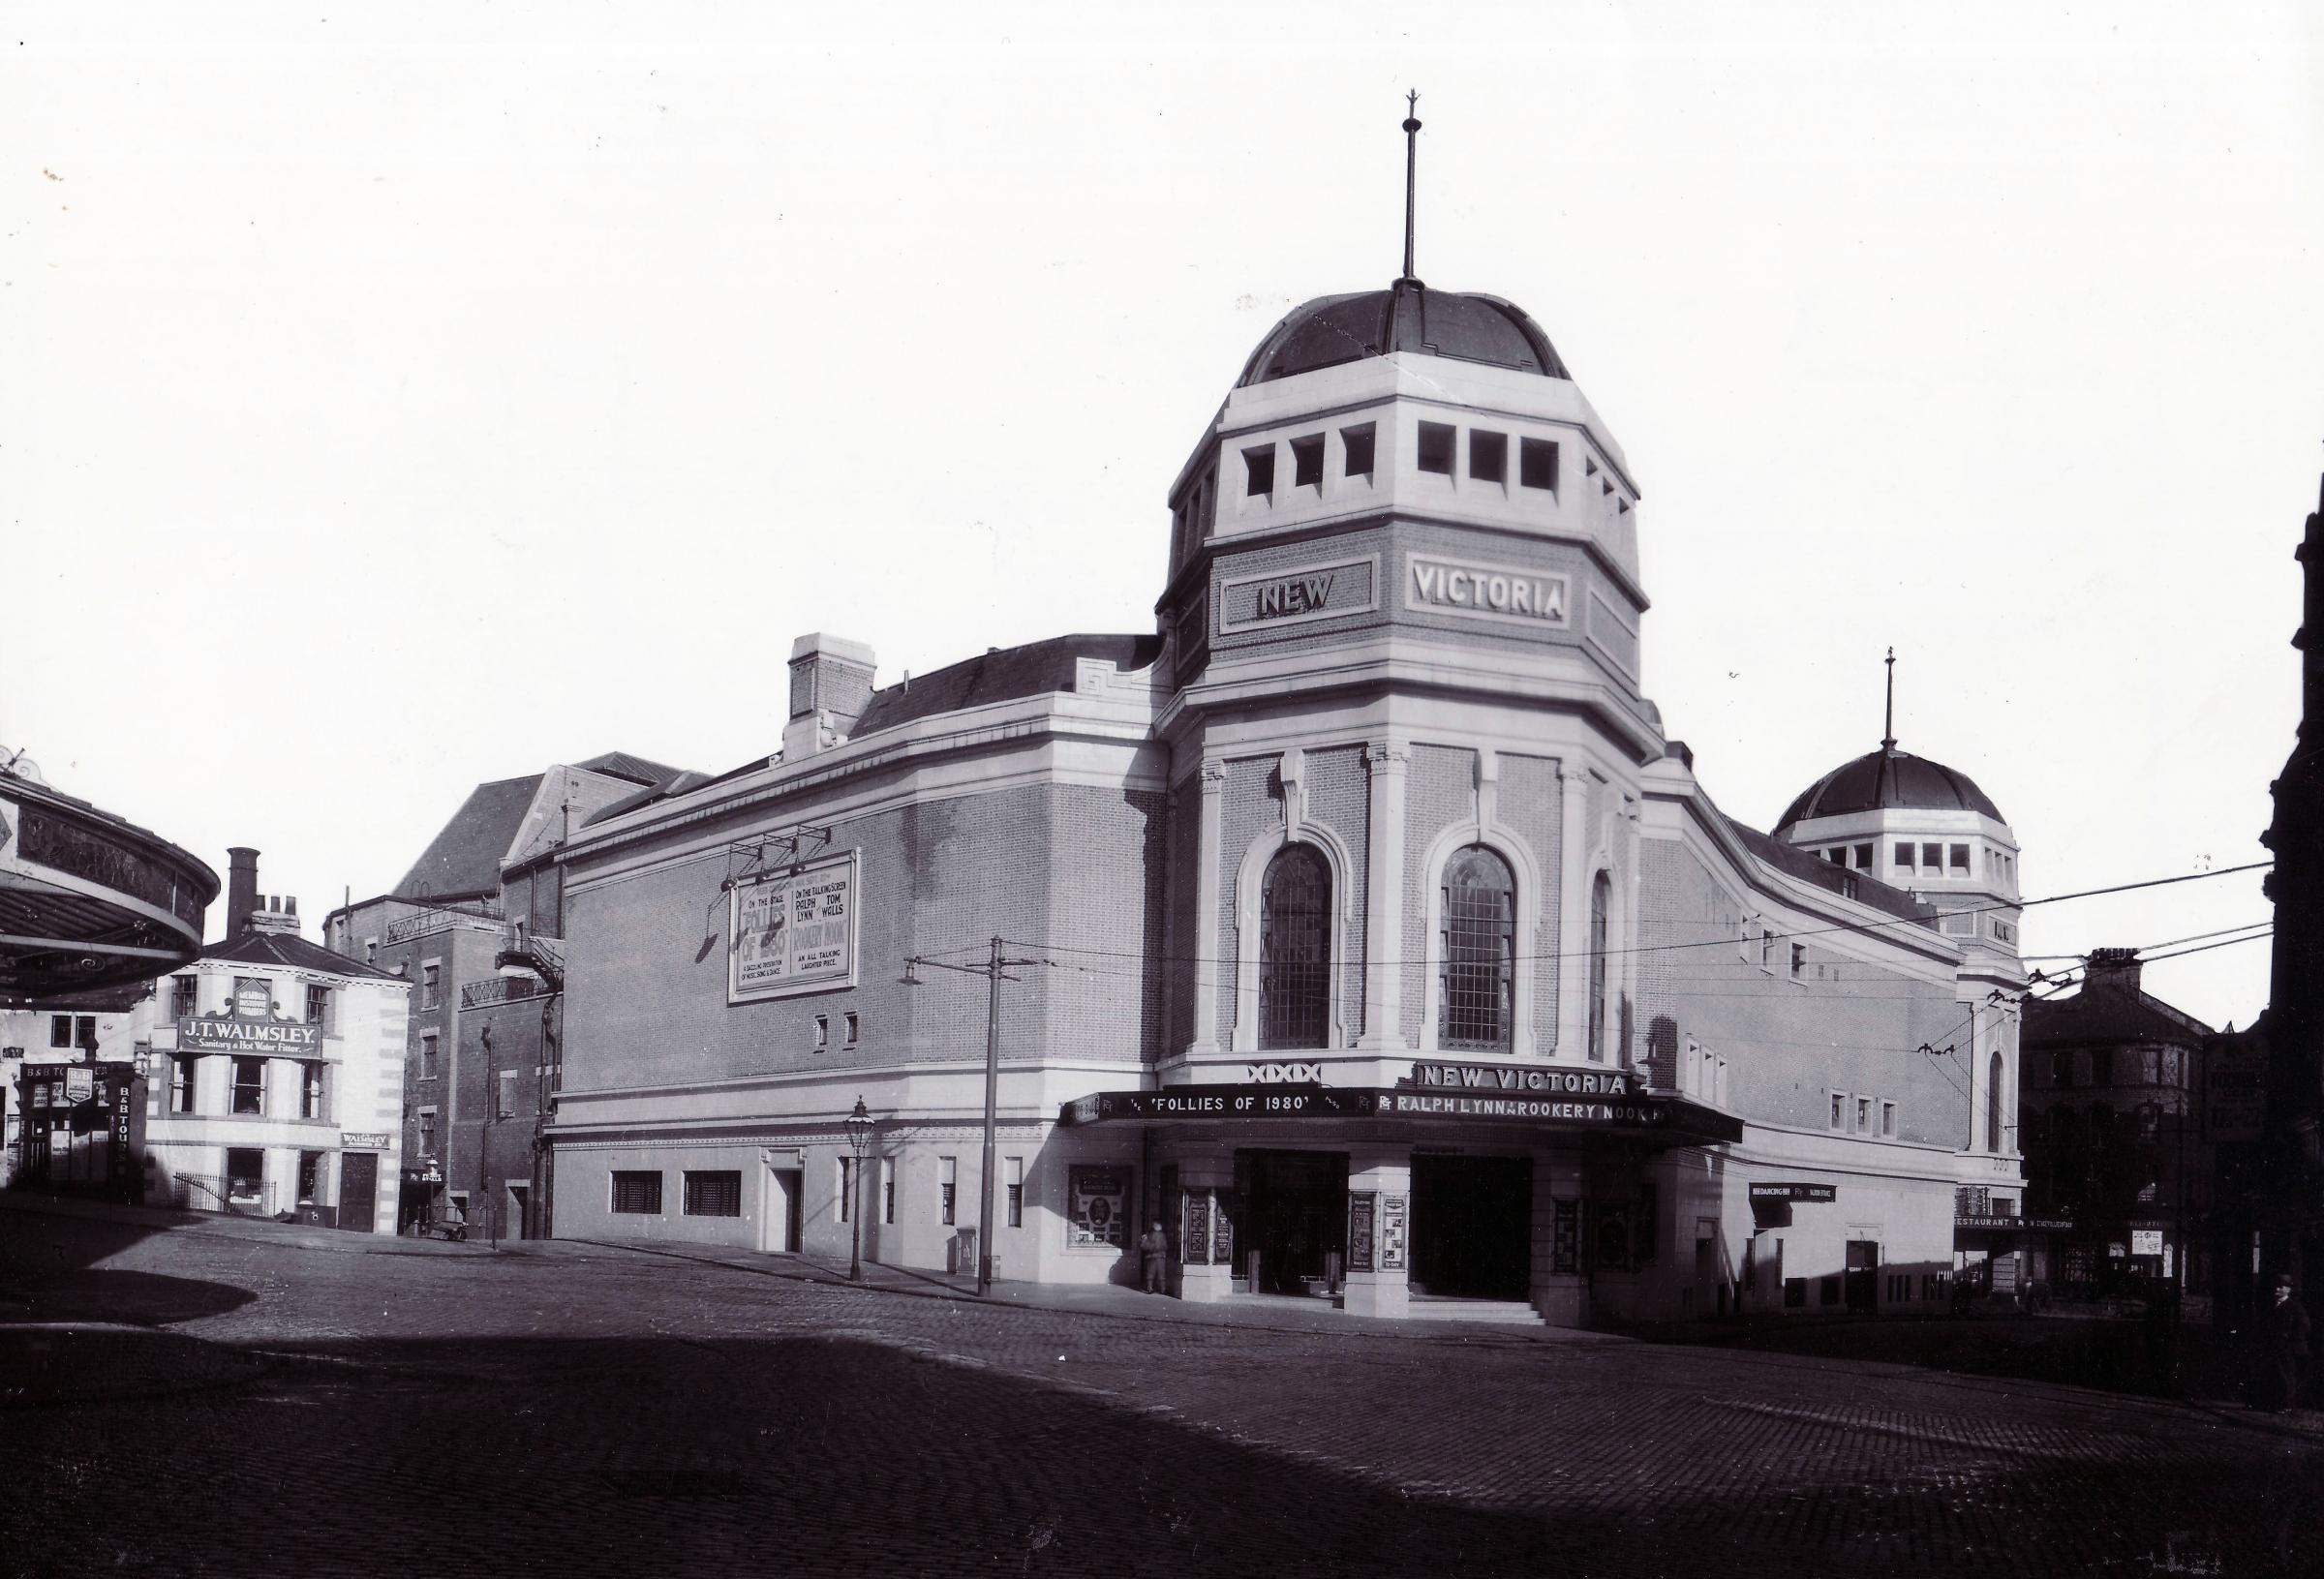 The New Victoria Cinema in 1930. Picture: Leslie Overend